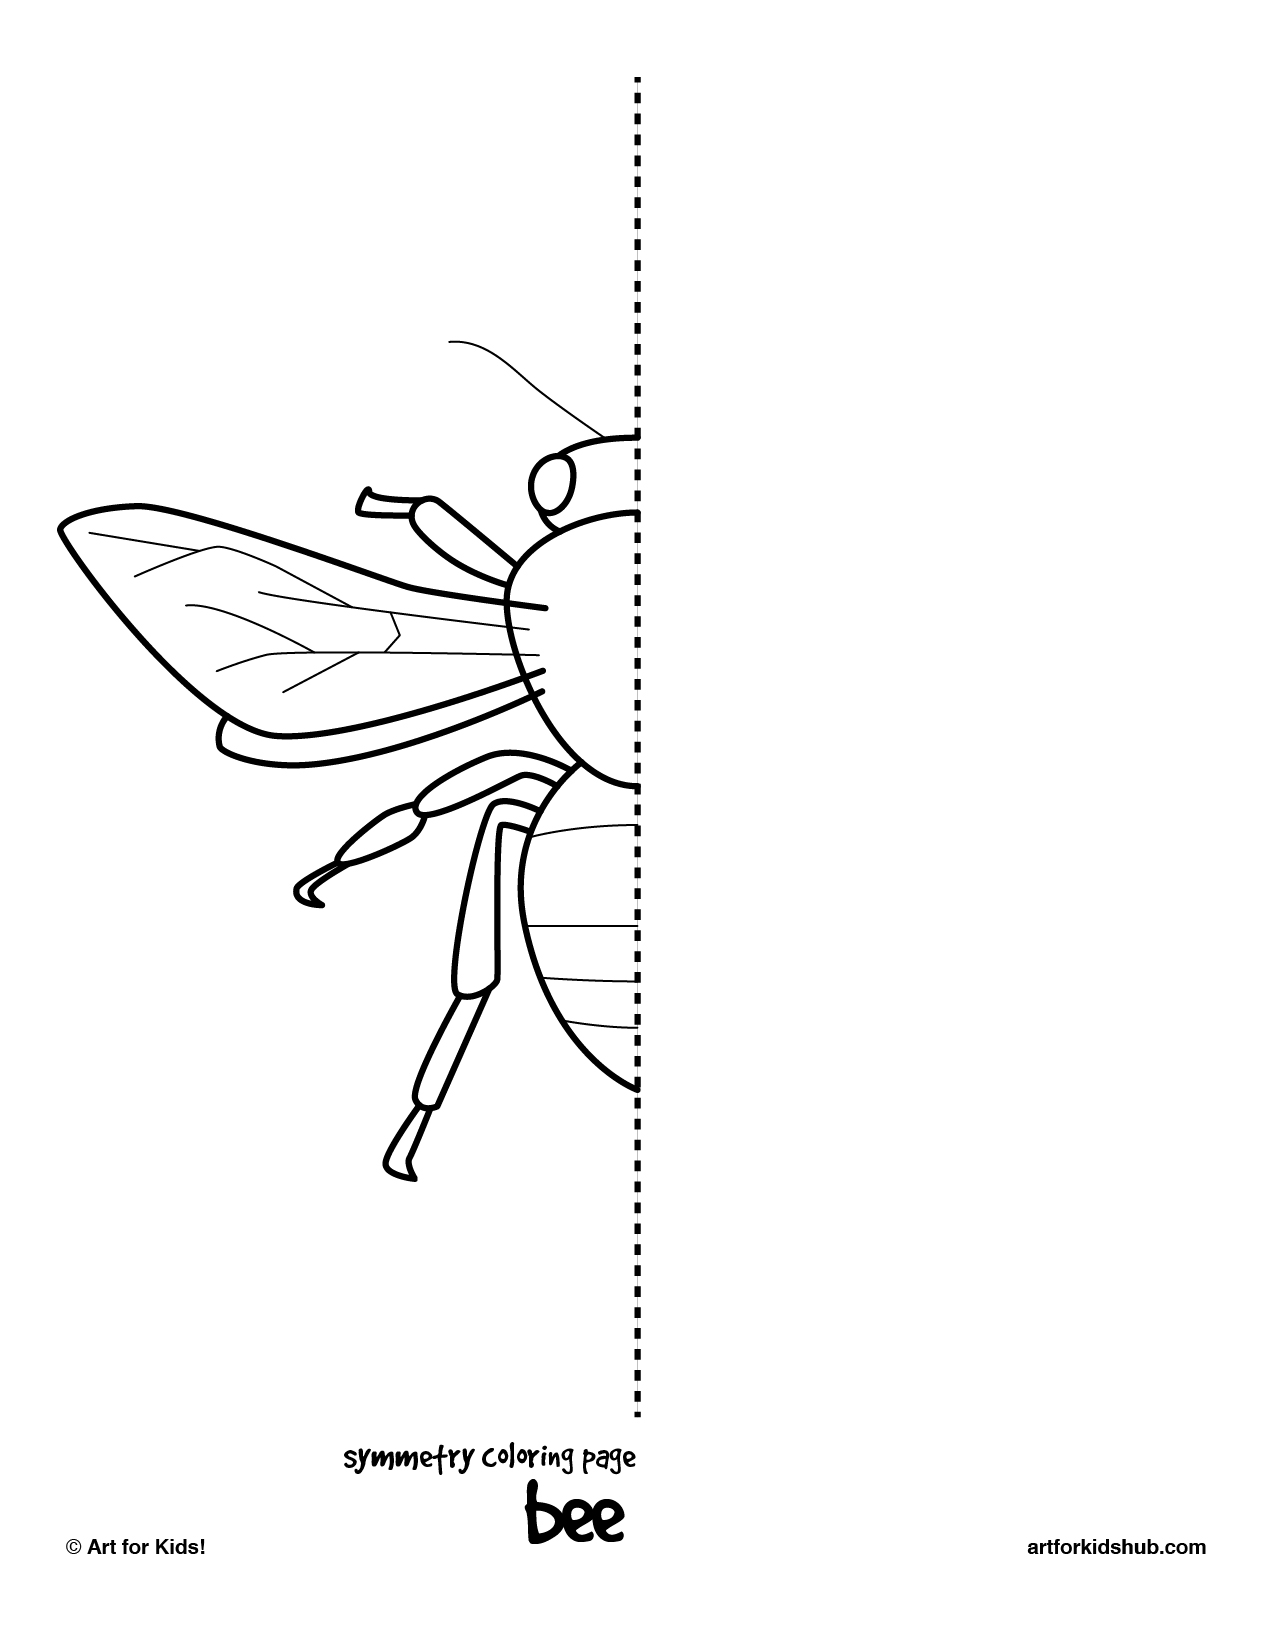 Symmetry Coloring Page Bee